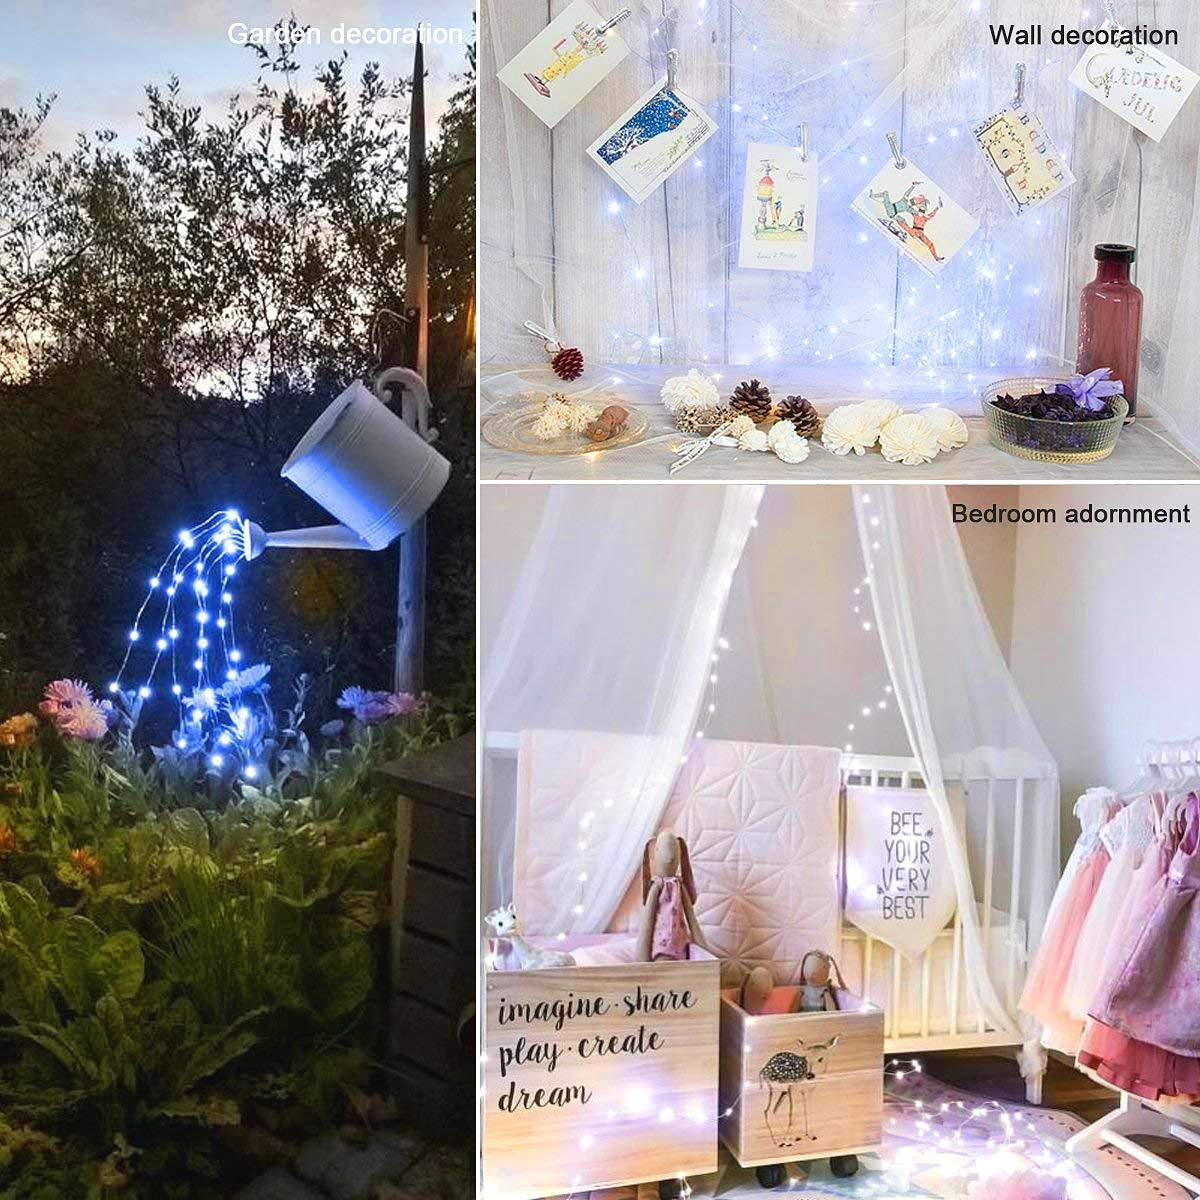 LED Rope String Lights, Patio Lights Umbrella Lights Hanging Outdoor Indoor Wall Decoration DIY Decoration for Bedroom Garden Holiday, Waterproof Lights Dimmable with Remote Control (cold white light) by NCLed (Image #3)